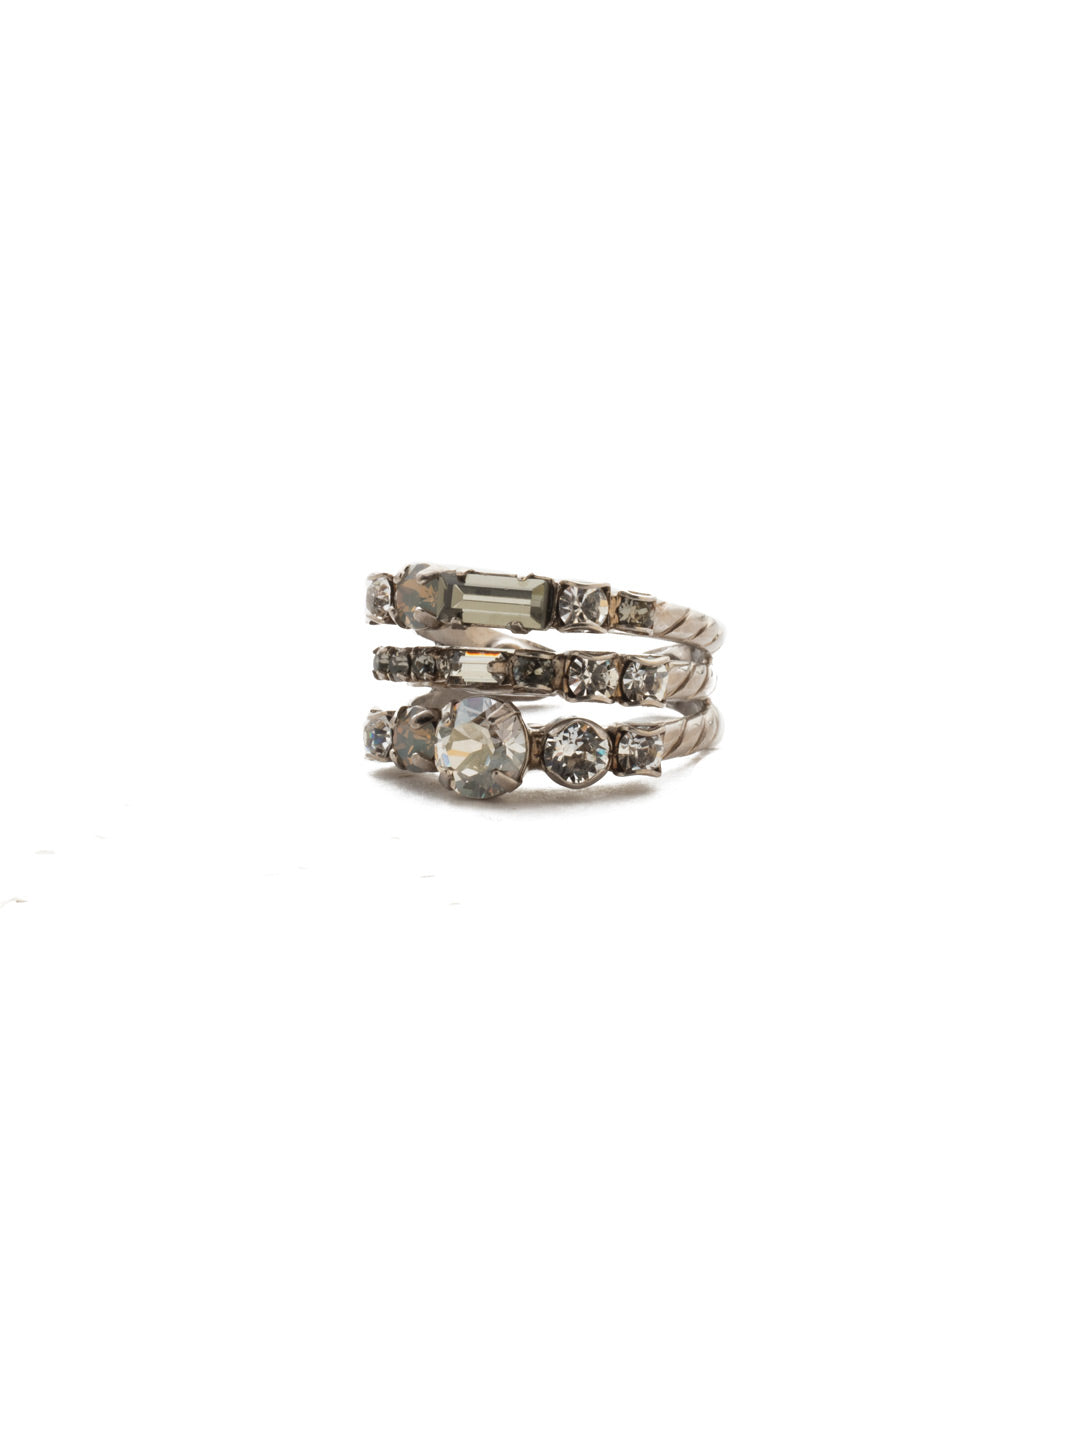 Triple Threat Stacked Ring - RDK23ASSTC